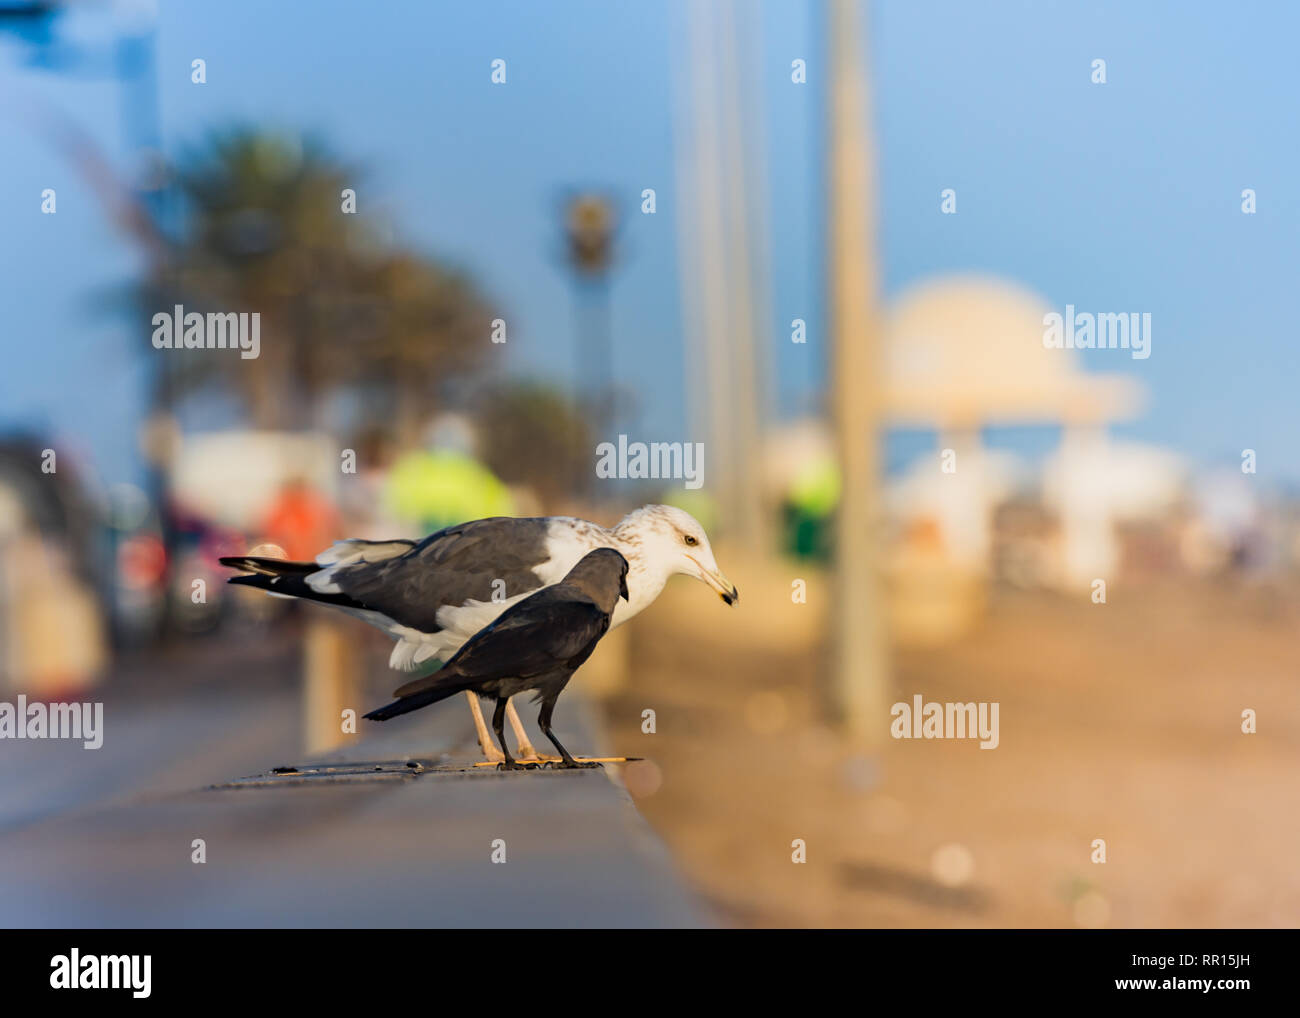 A seagull and a crow - Stock Image